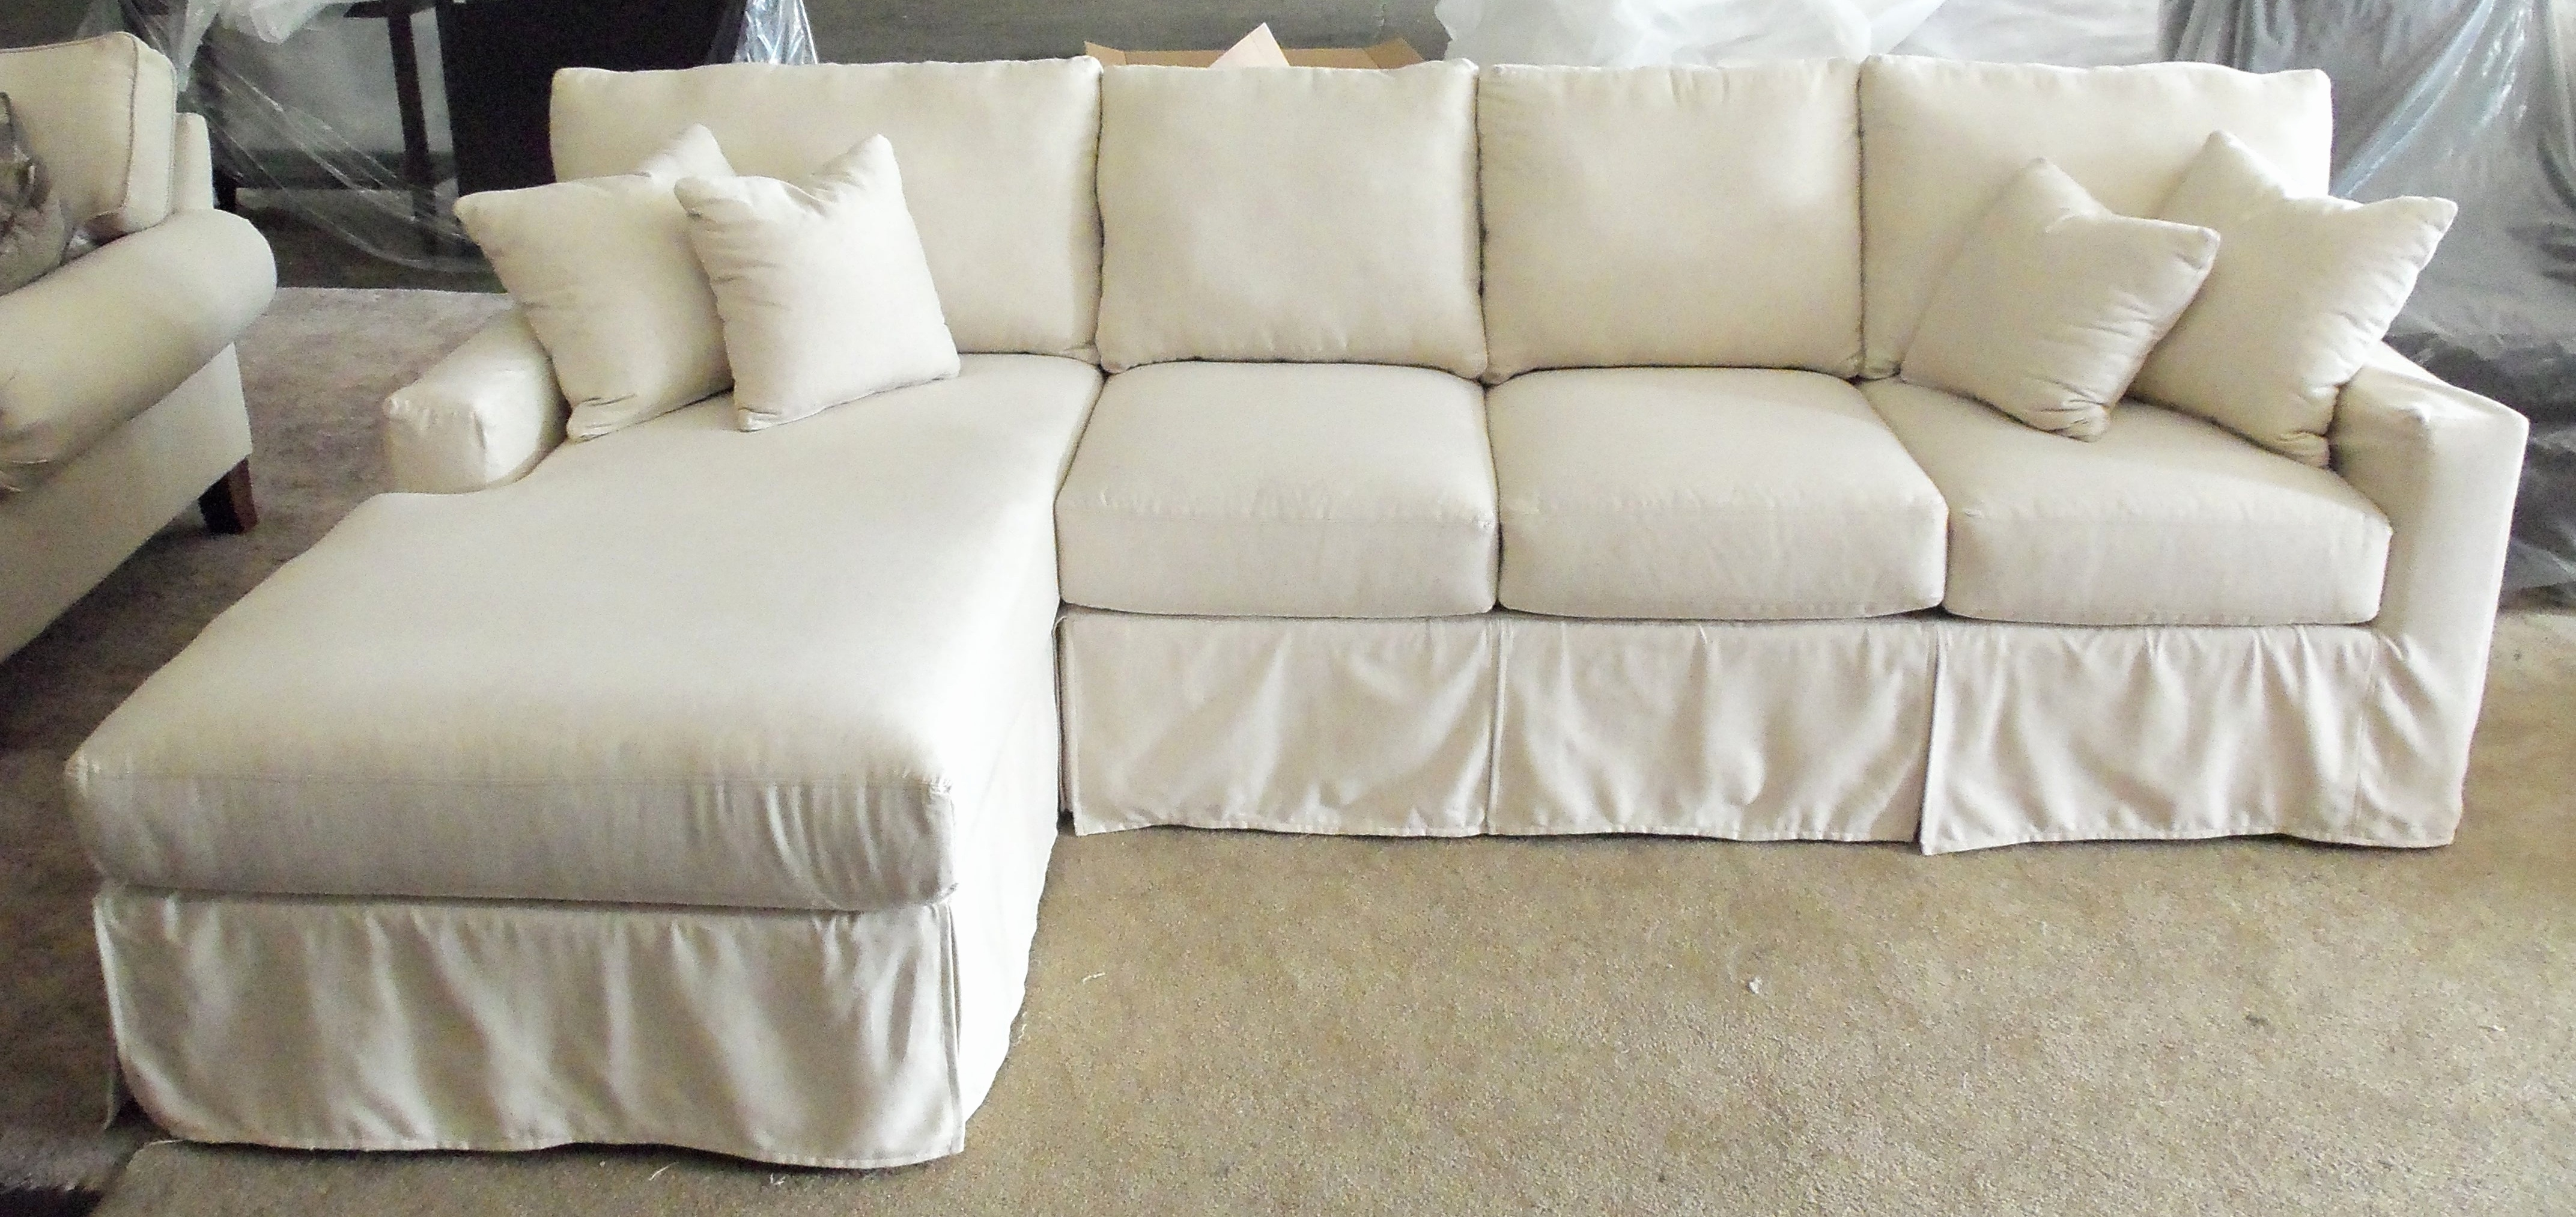 New White Slipcovered Sofa Ikea 2018 – Couches And Sofas Ideas Intended For Best And Newest Slipcovered Sofas With Chaise (View 7 of 15)